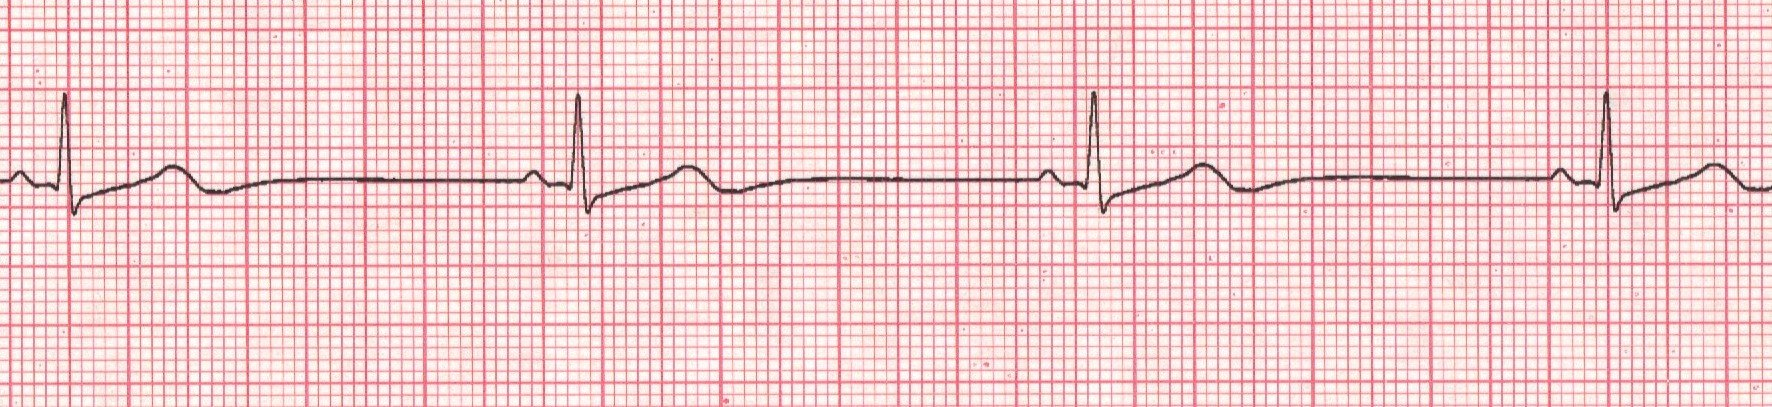 12 Lead EKG Interpreta...